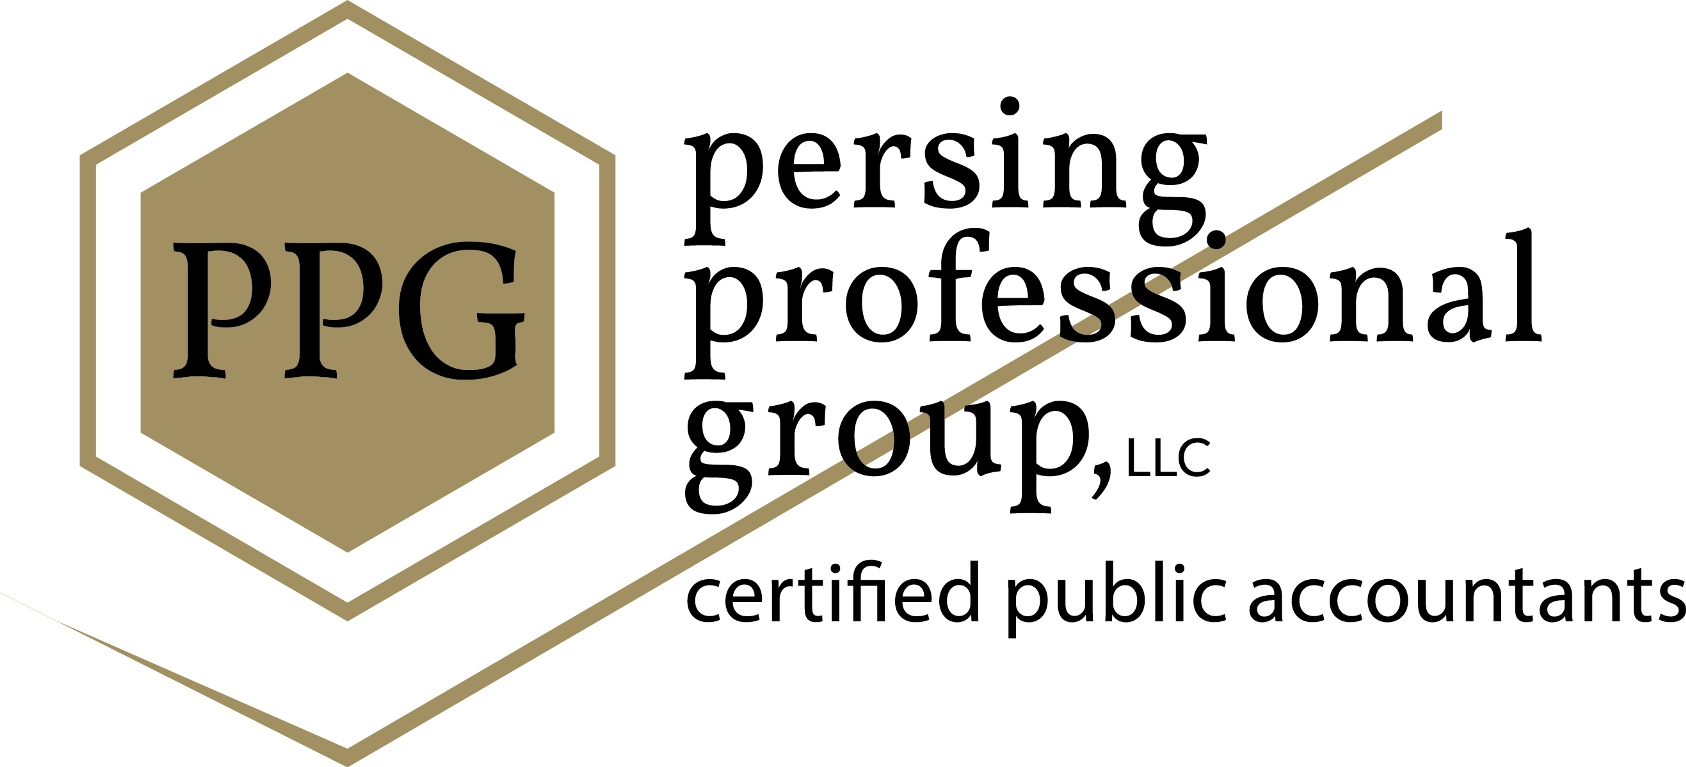 Persing Professional Group, LLC